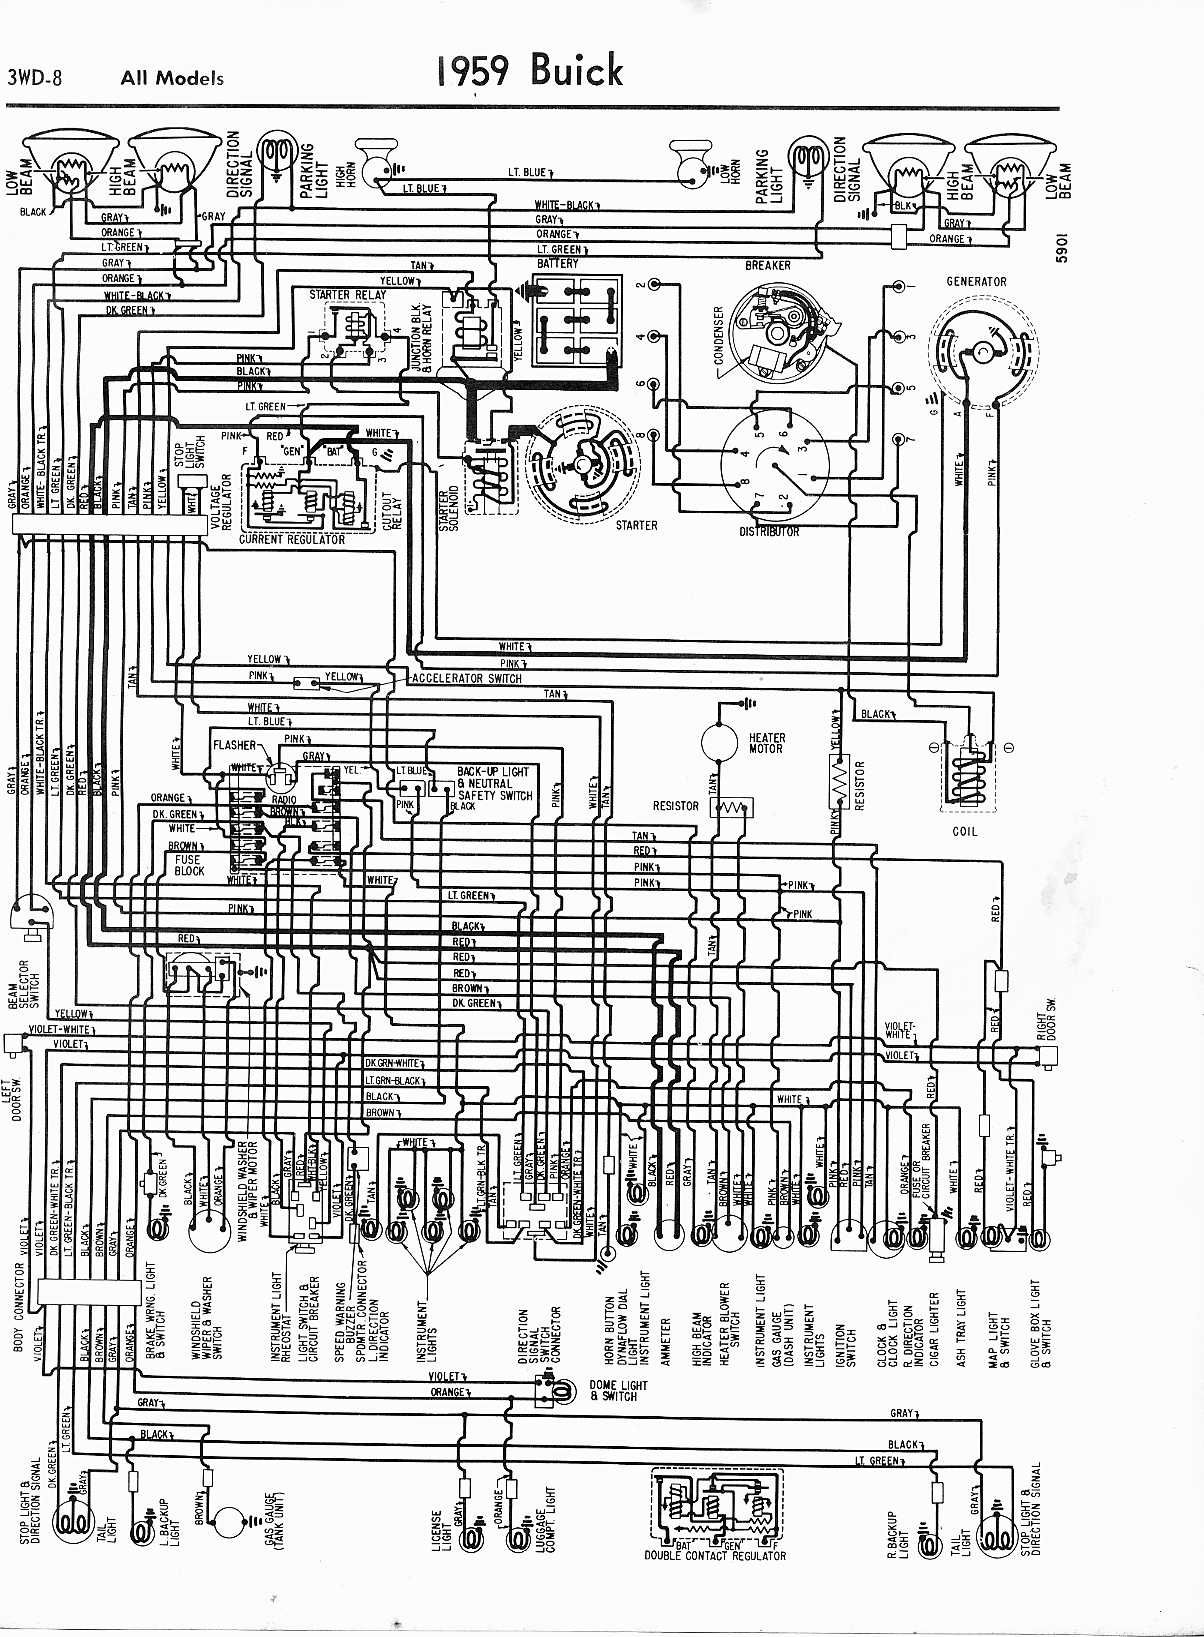 1964 Skylark Wiring Diagram Buick Wiring Diagrams 1957 1965